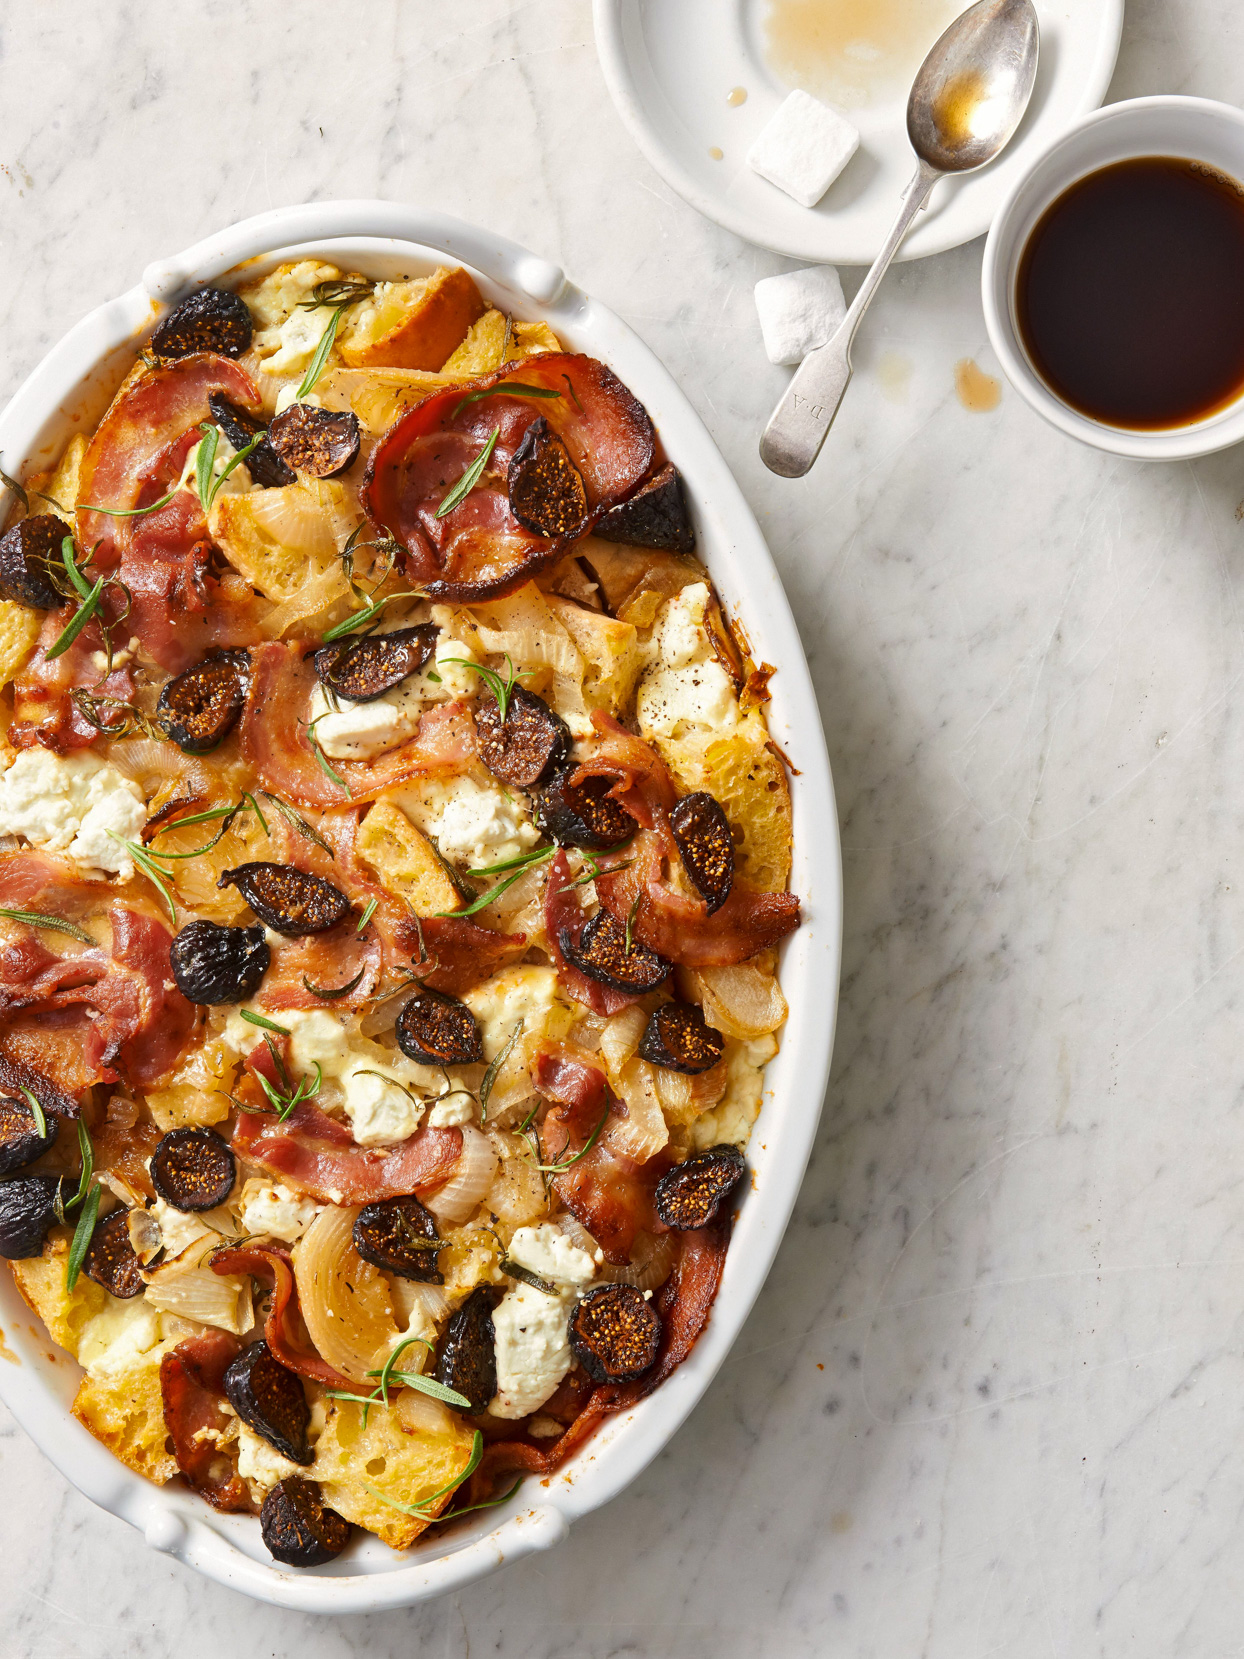 Fig, Pancetta, and Goat Cheese Brunch Casserole